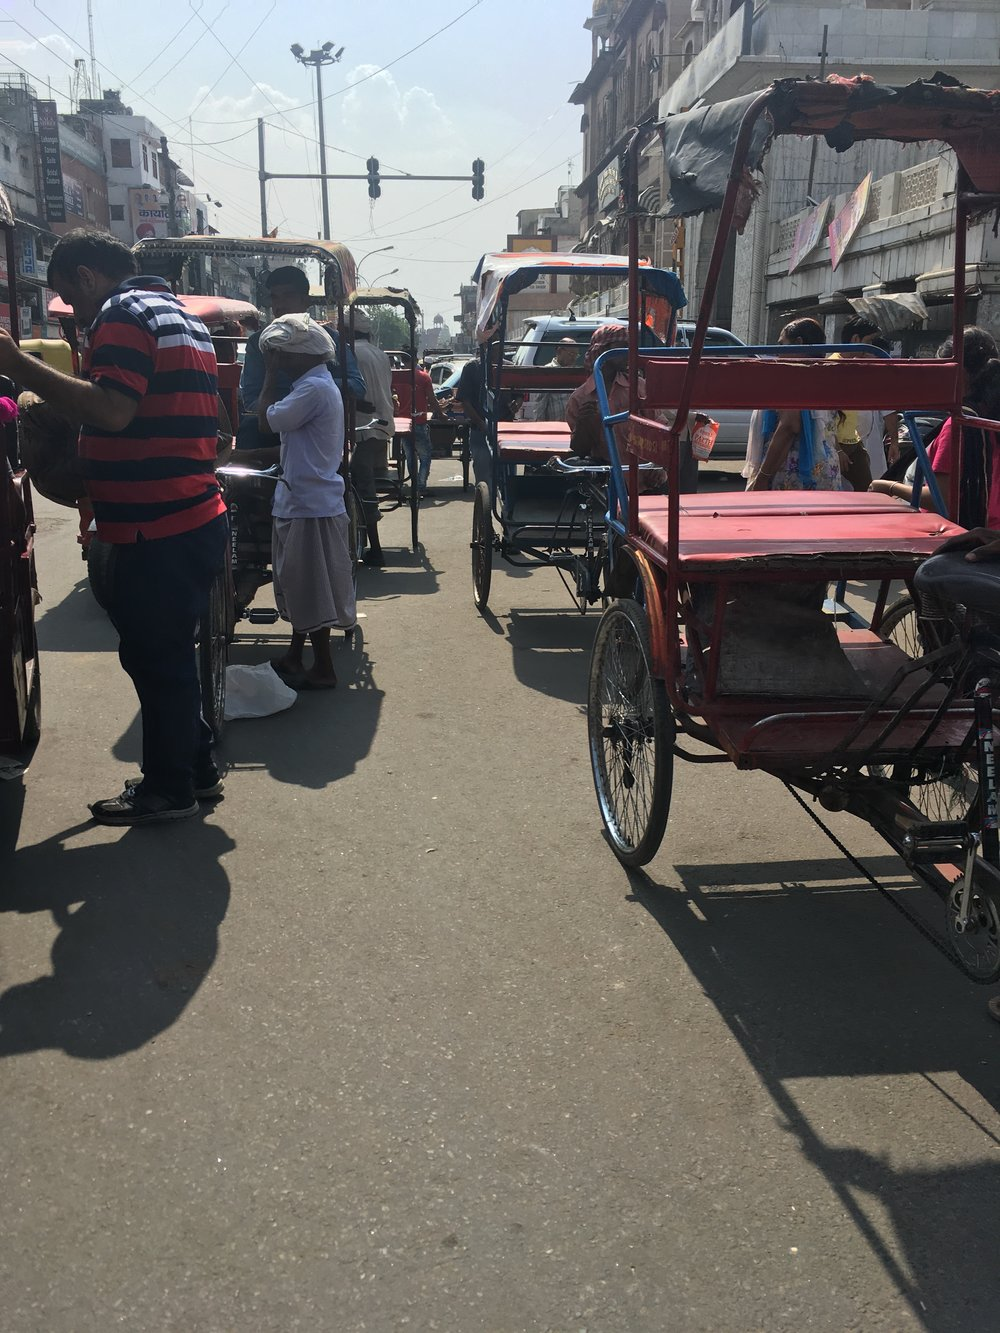 Old Delhi and Khari Baoli are crowded!